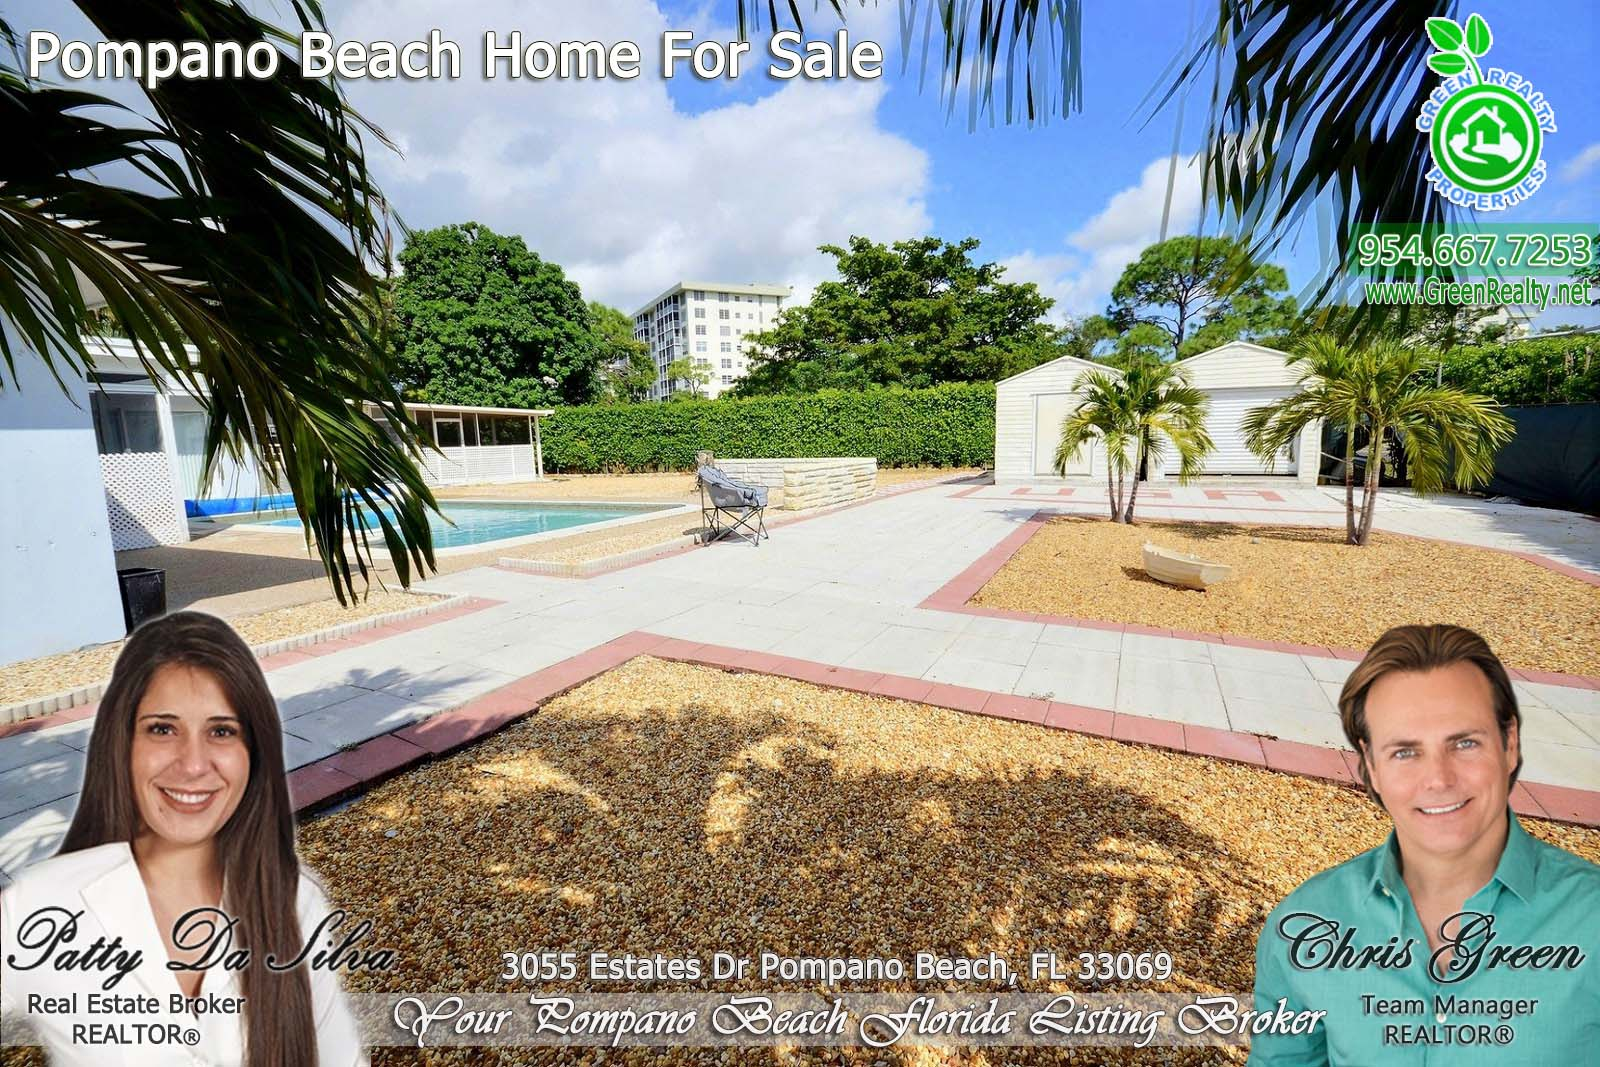 37 Pompano Beach Homes For Sale (4)